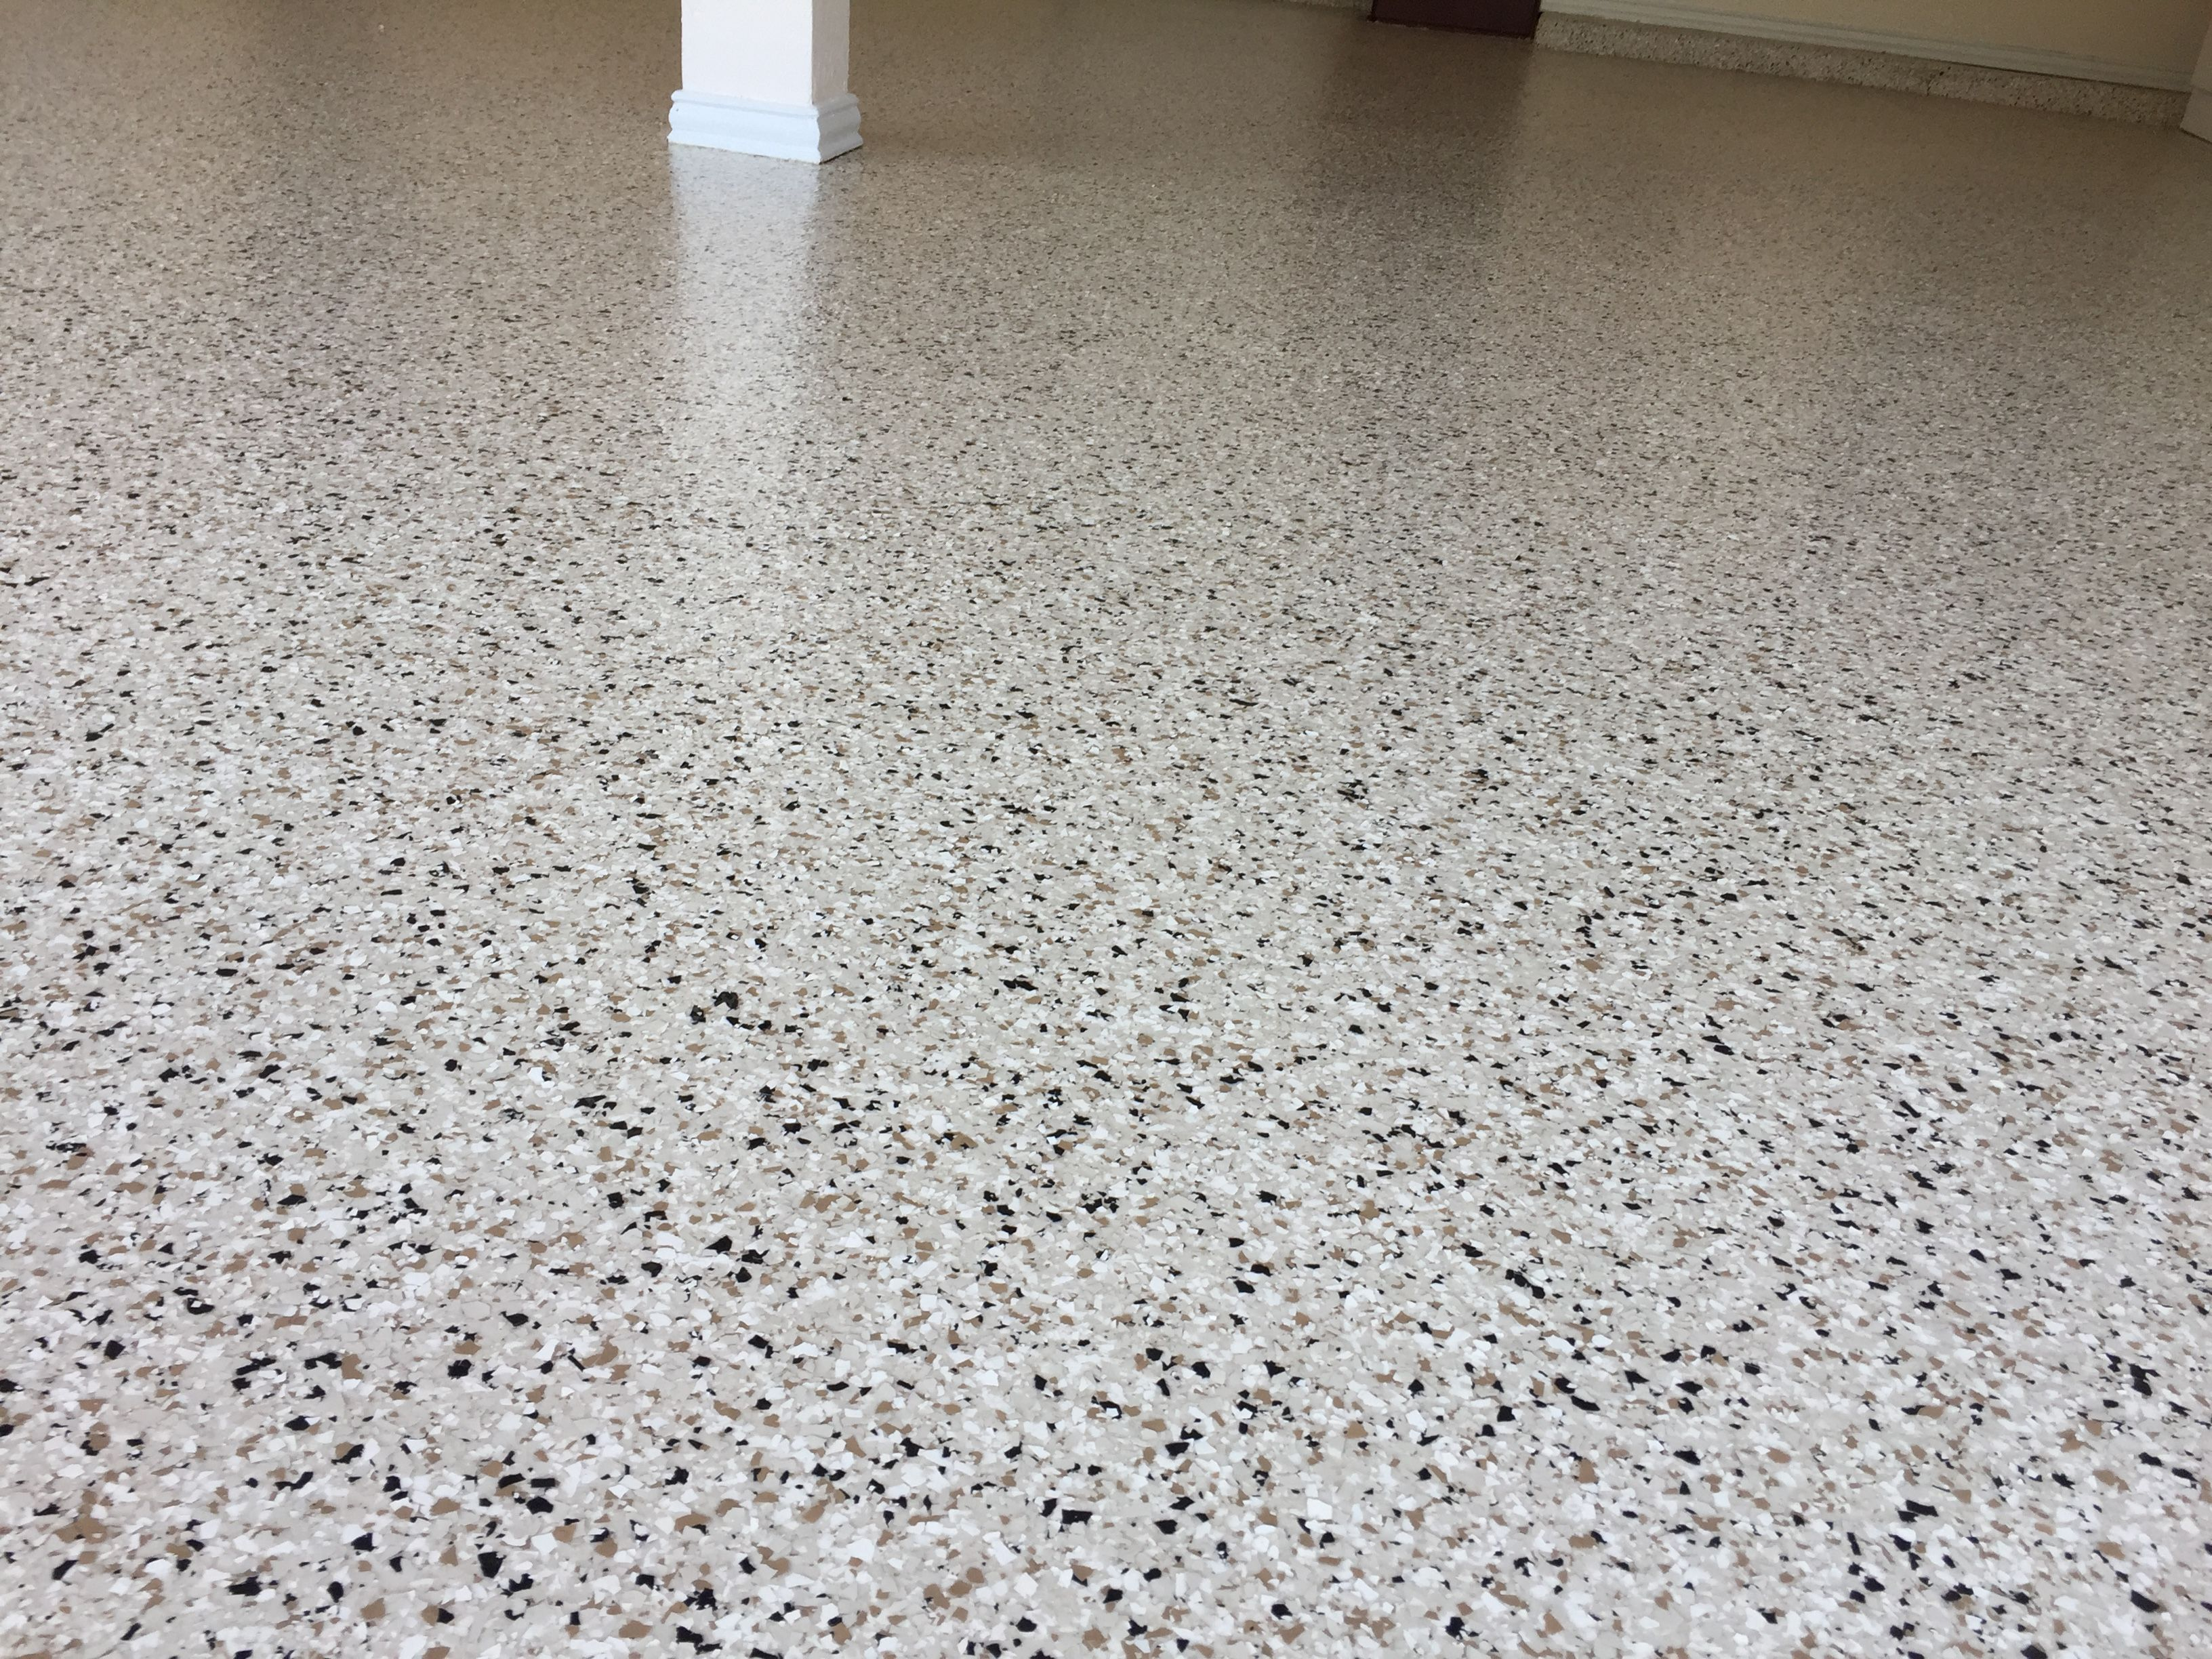 Epoxy Garage Floor Covering Epoxy Garage Floor Coating Garage Floor Coatings Garage Epoxy